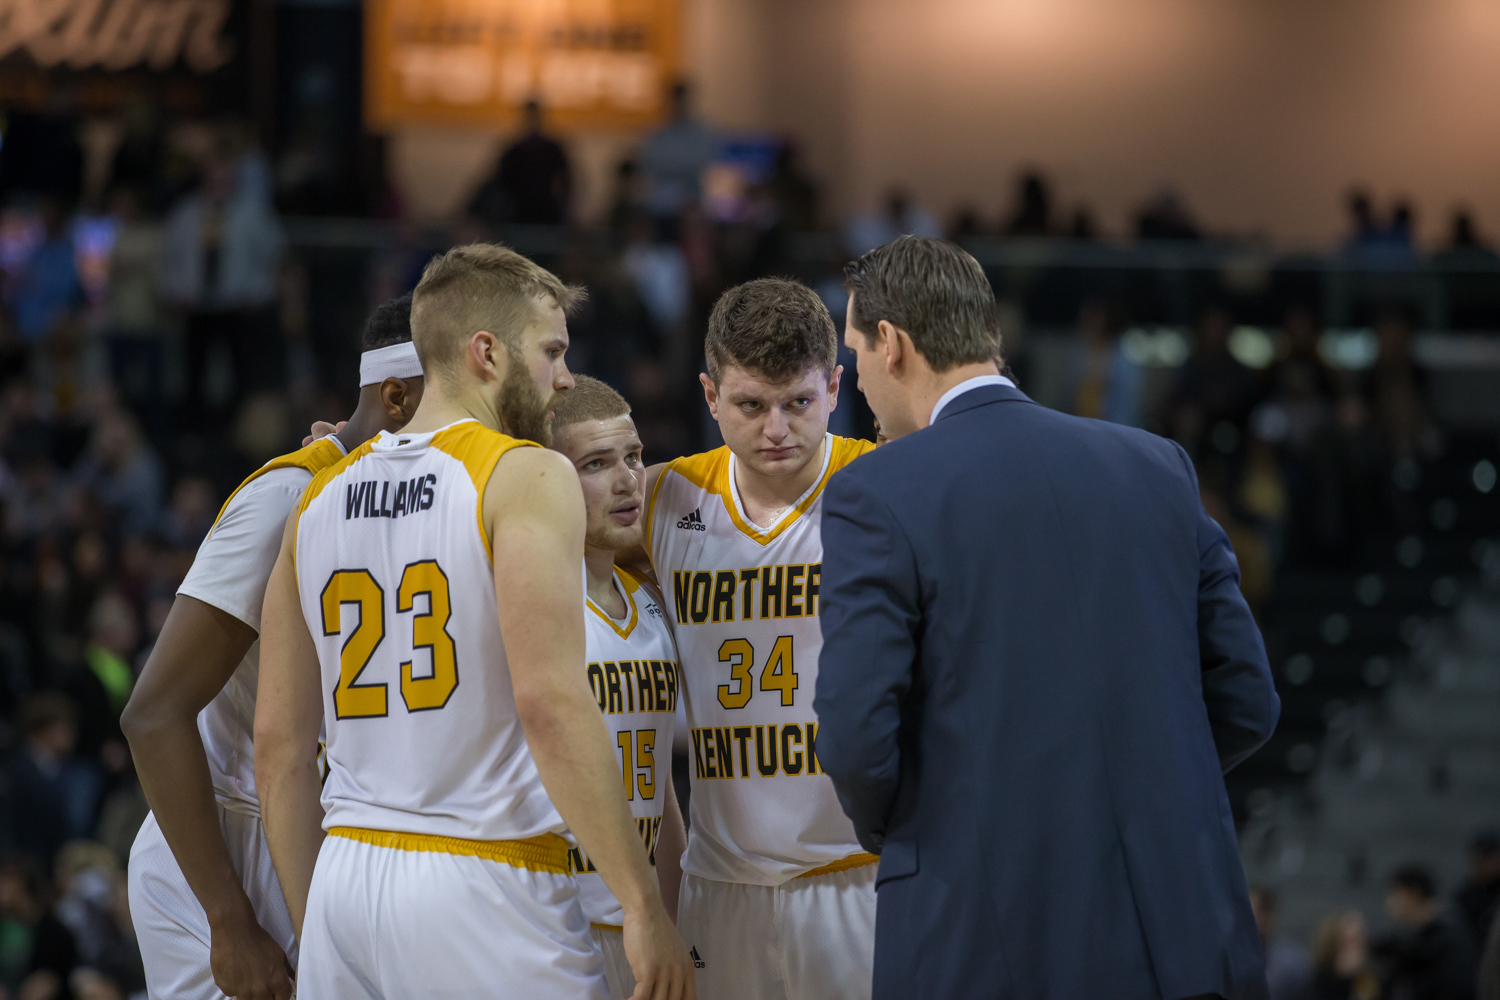 Head+Coach+John+Brannen+talks+to+players+before+the+final+play+of+the+game+against+Milwaukee.